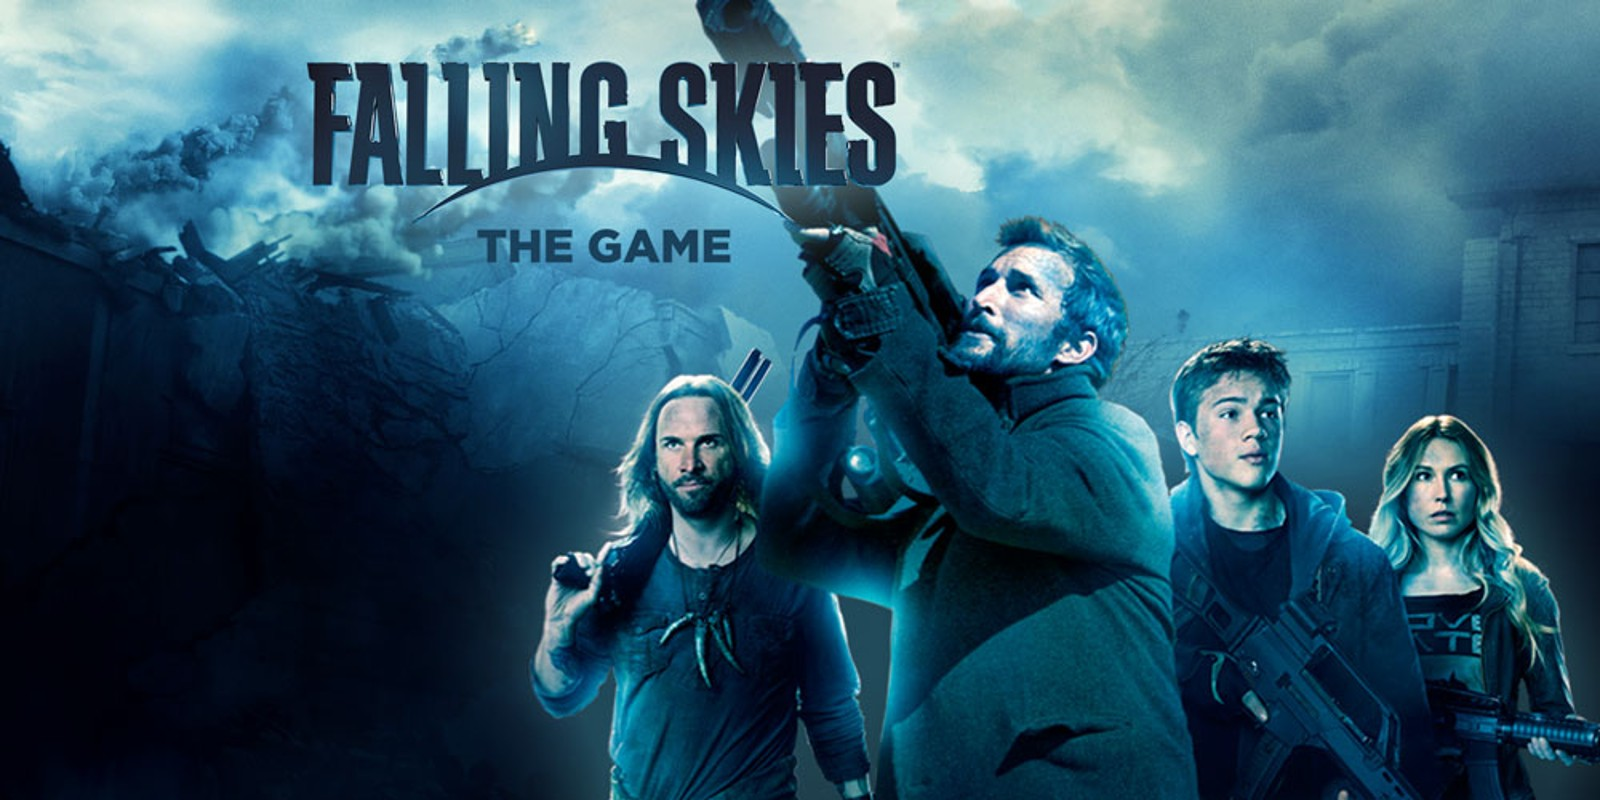 Sky Tv Offers >> Falling Skies: The Game | Wii U download software | Games ...